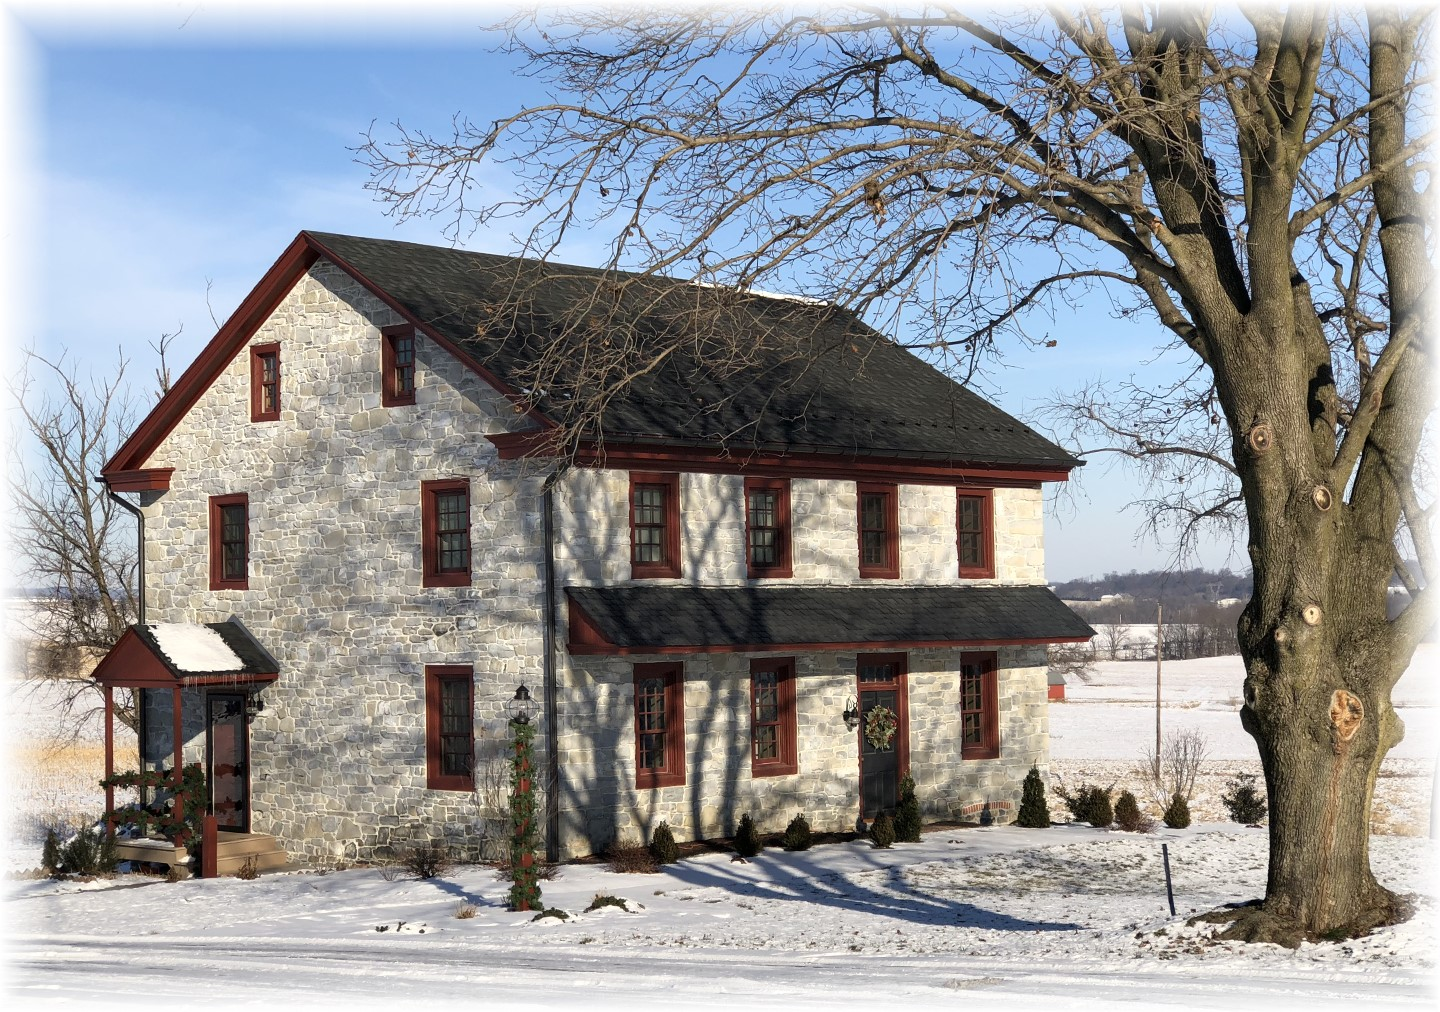 mount joy Search mount joy, pennsylvania real estate listings & new homes for sale in mount joy, pa find mount joy houses, townhouses, condos, & properties for sale at weichertcom.